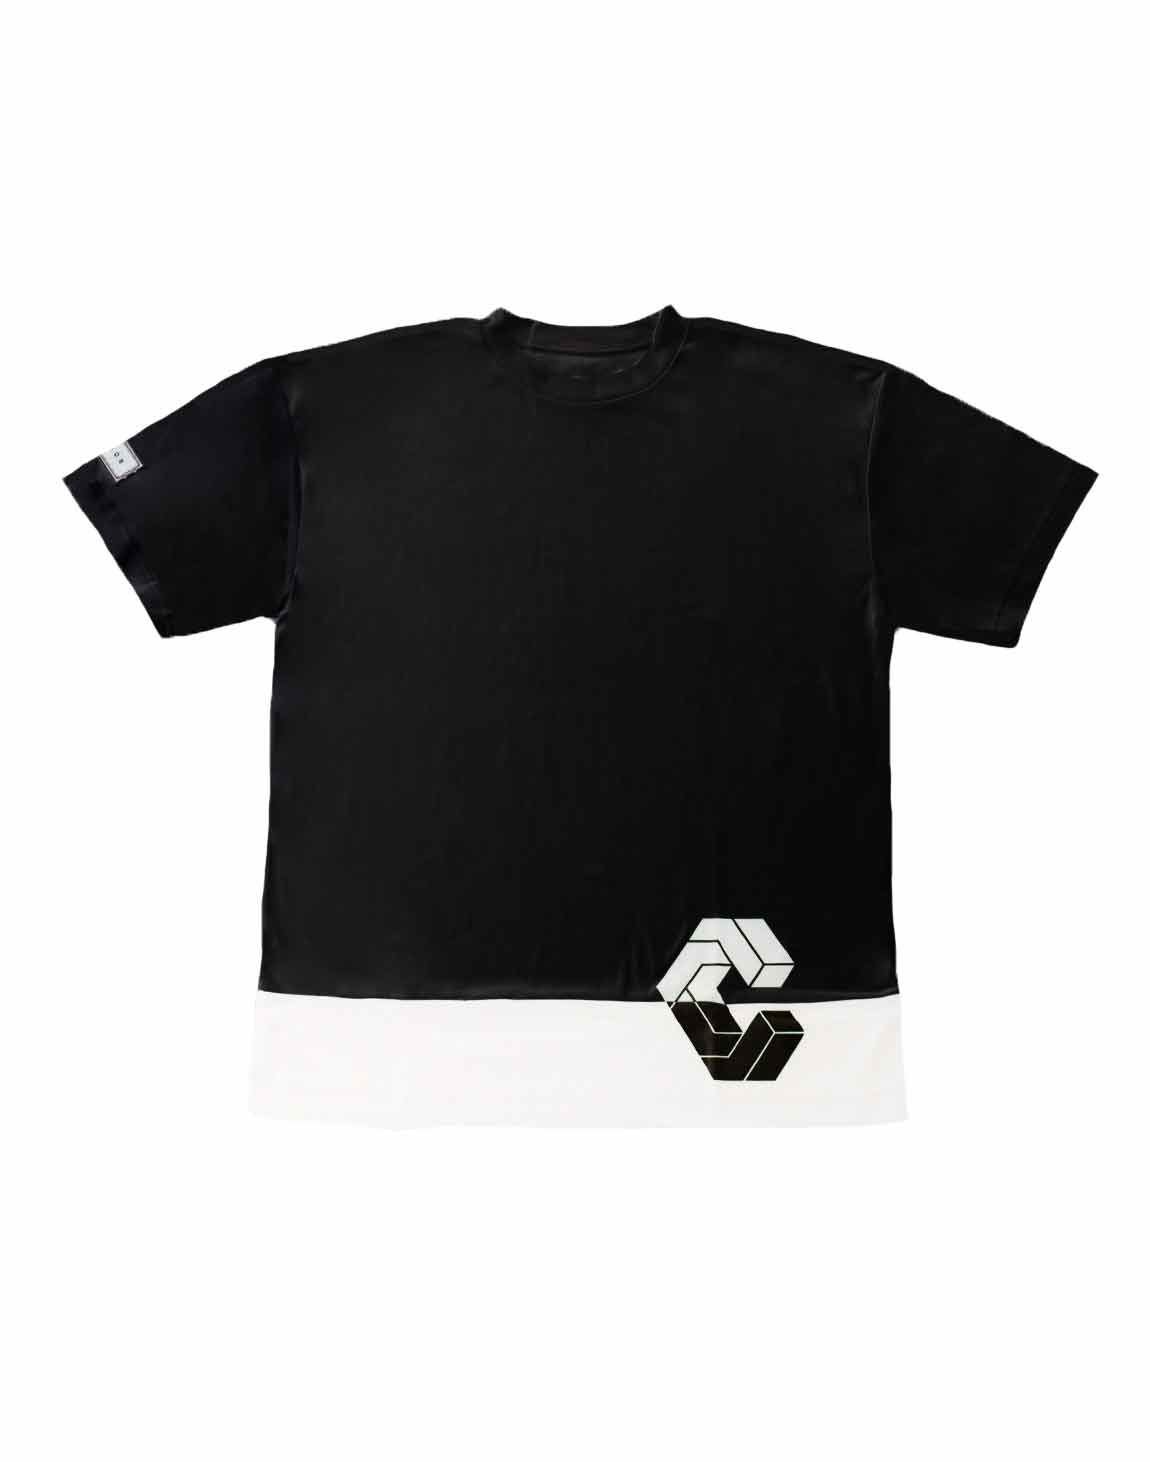 <img class='new_mark_img1' src='https://img.shop-pro.jp/img/new/icons1.gif' style='border:none;display:inline;margin:0px;padding:0px;width:auto;' />CRONOS MODE SIDE LOGO OVER SIZE T-SHIRTS【BLACK×WHITE】